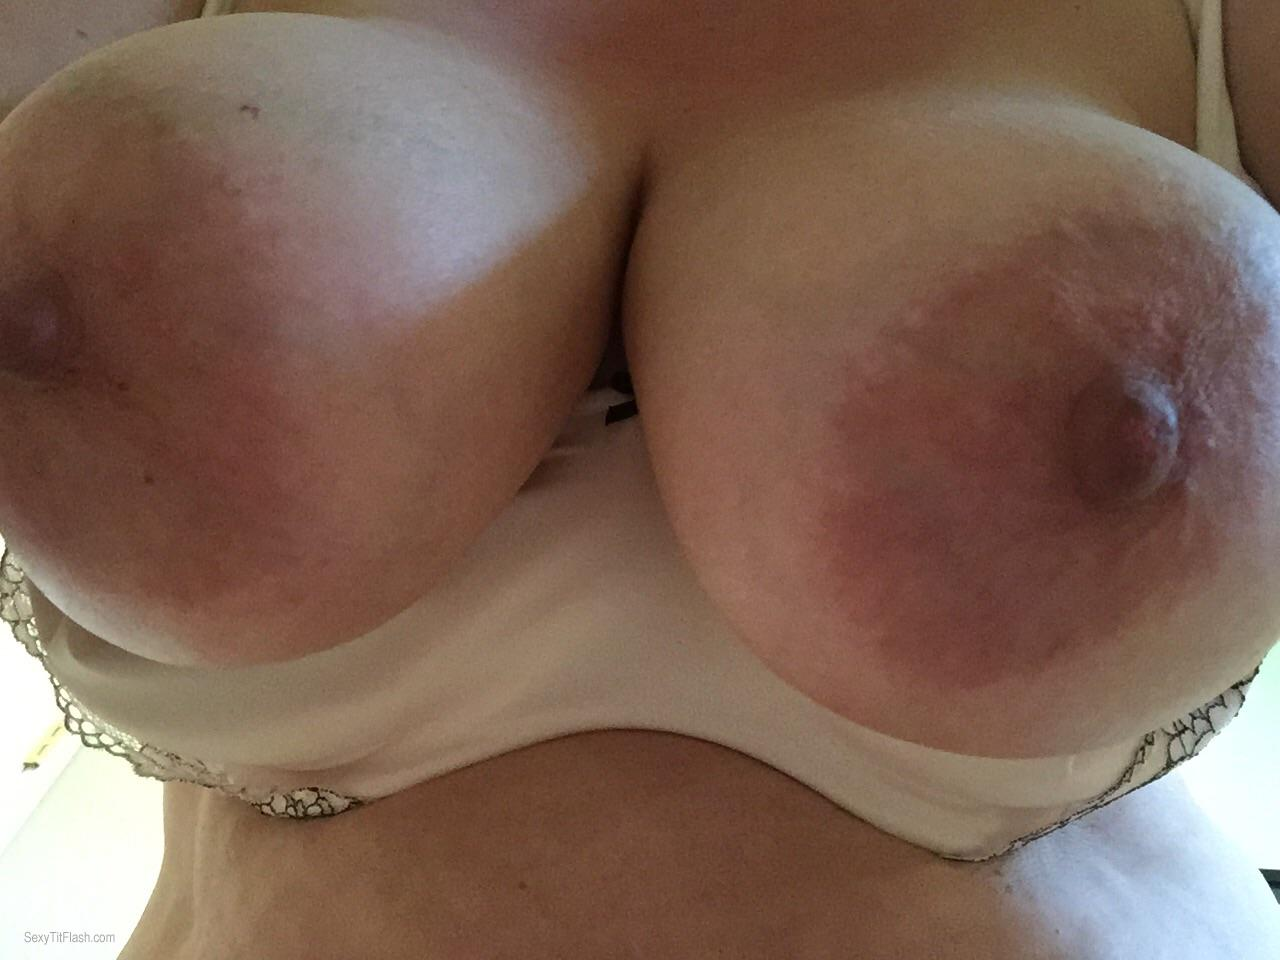 My Very big Tits Topless Selfie by Cammie